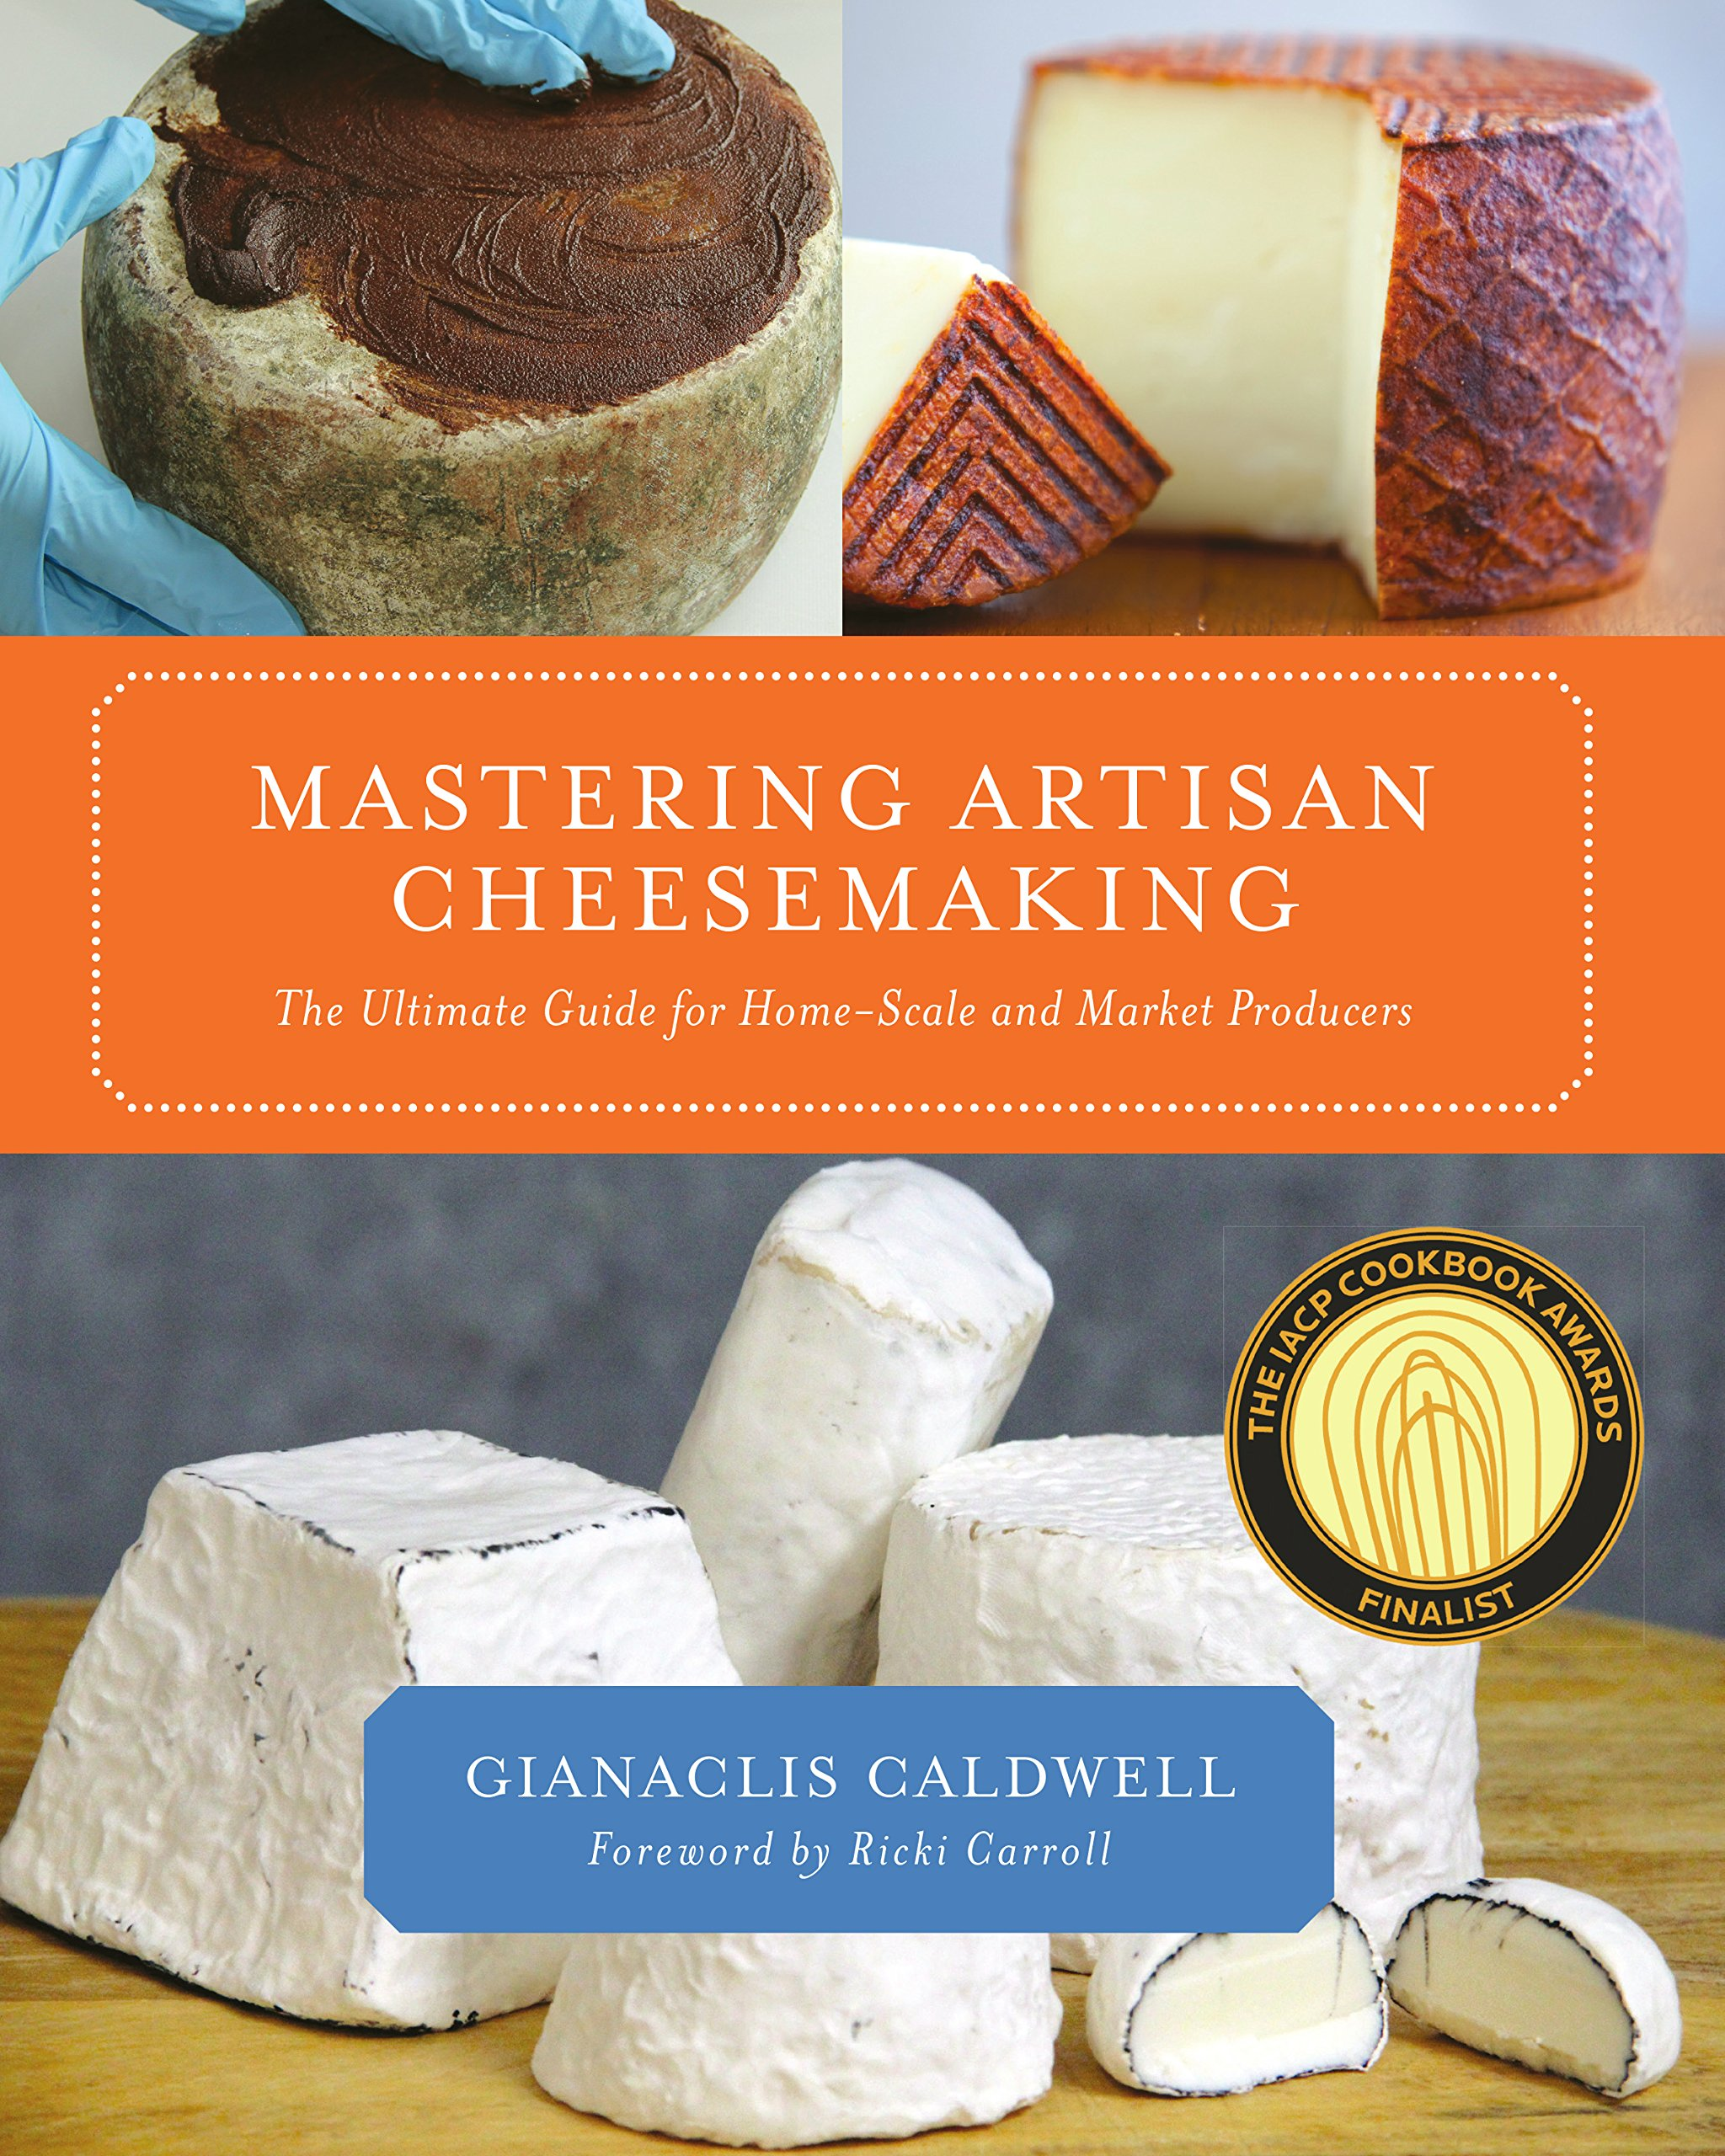 Mastering Artisan Cheesemaking: The Ultimate Guide for Home-Scale and Market Producers by Chelsea Green Publishing Company